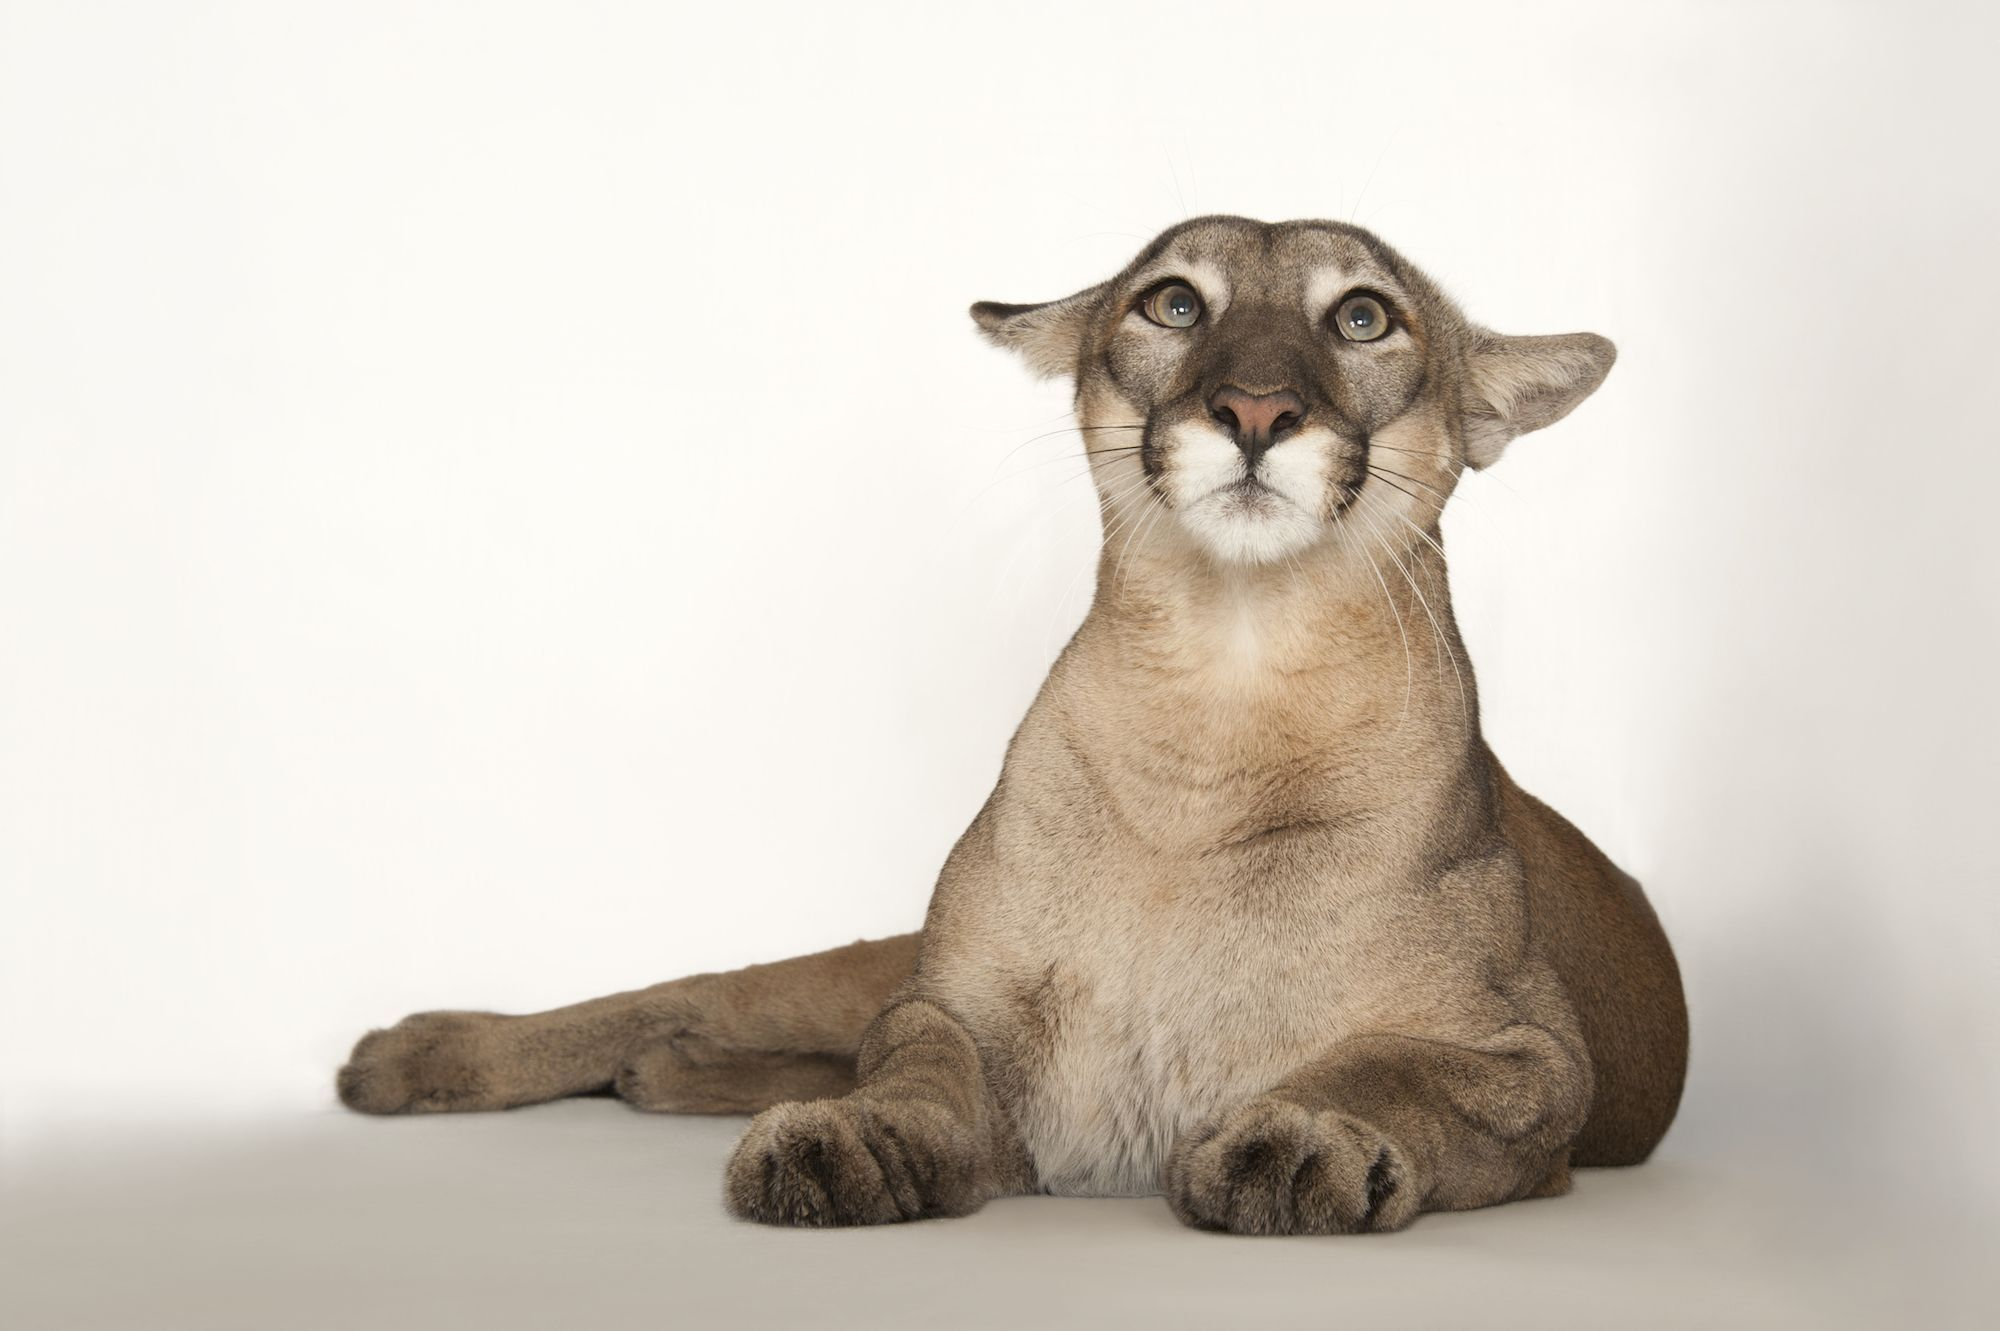 Photo Ark: Florida Panther | National Geographic Society